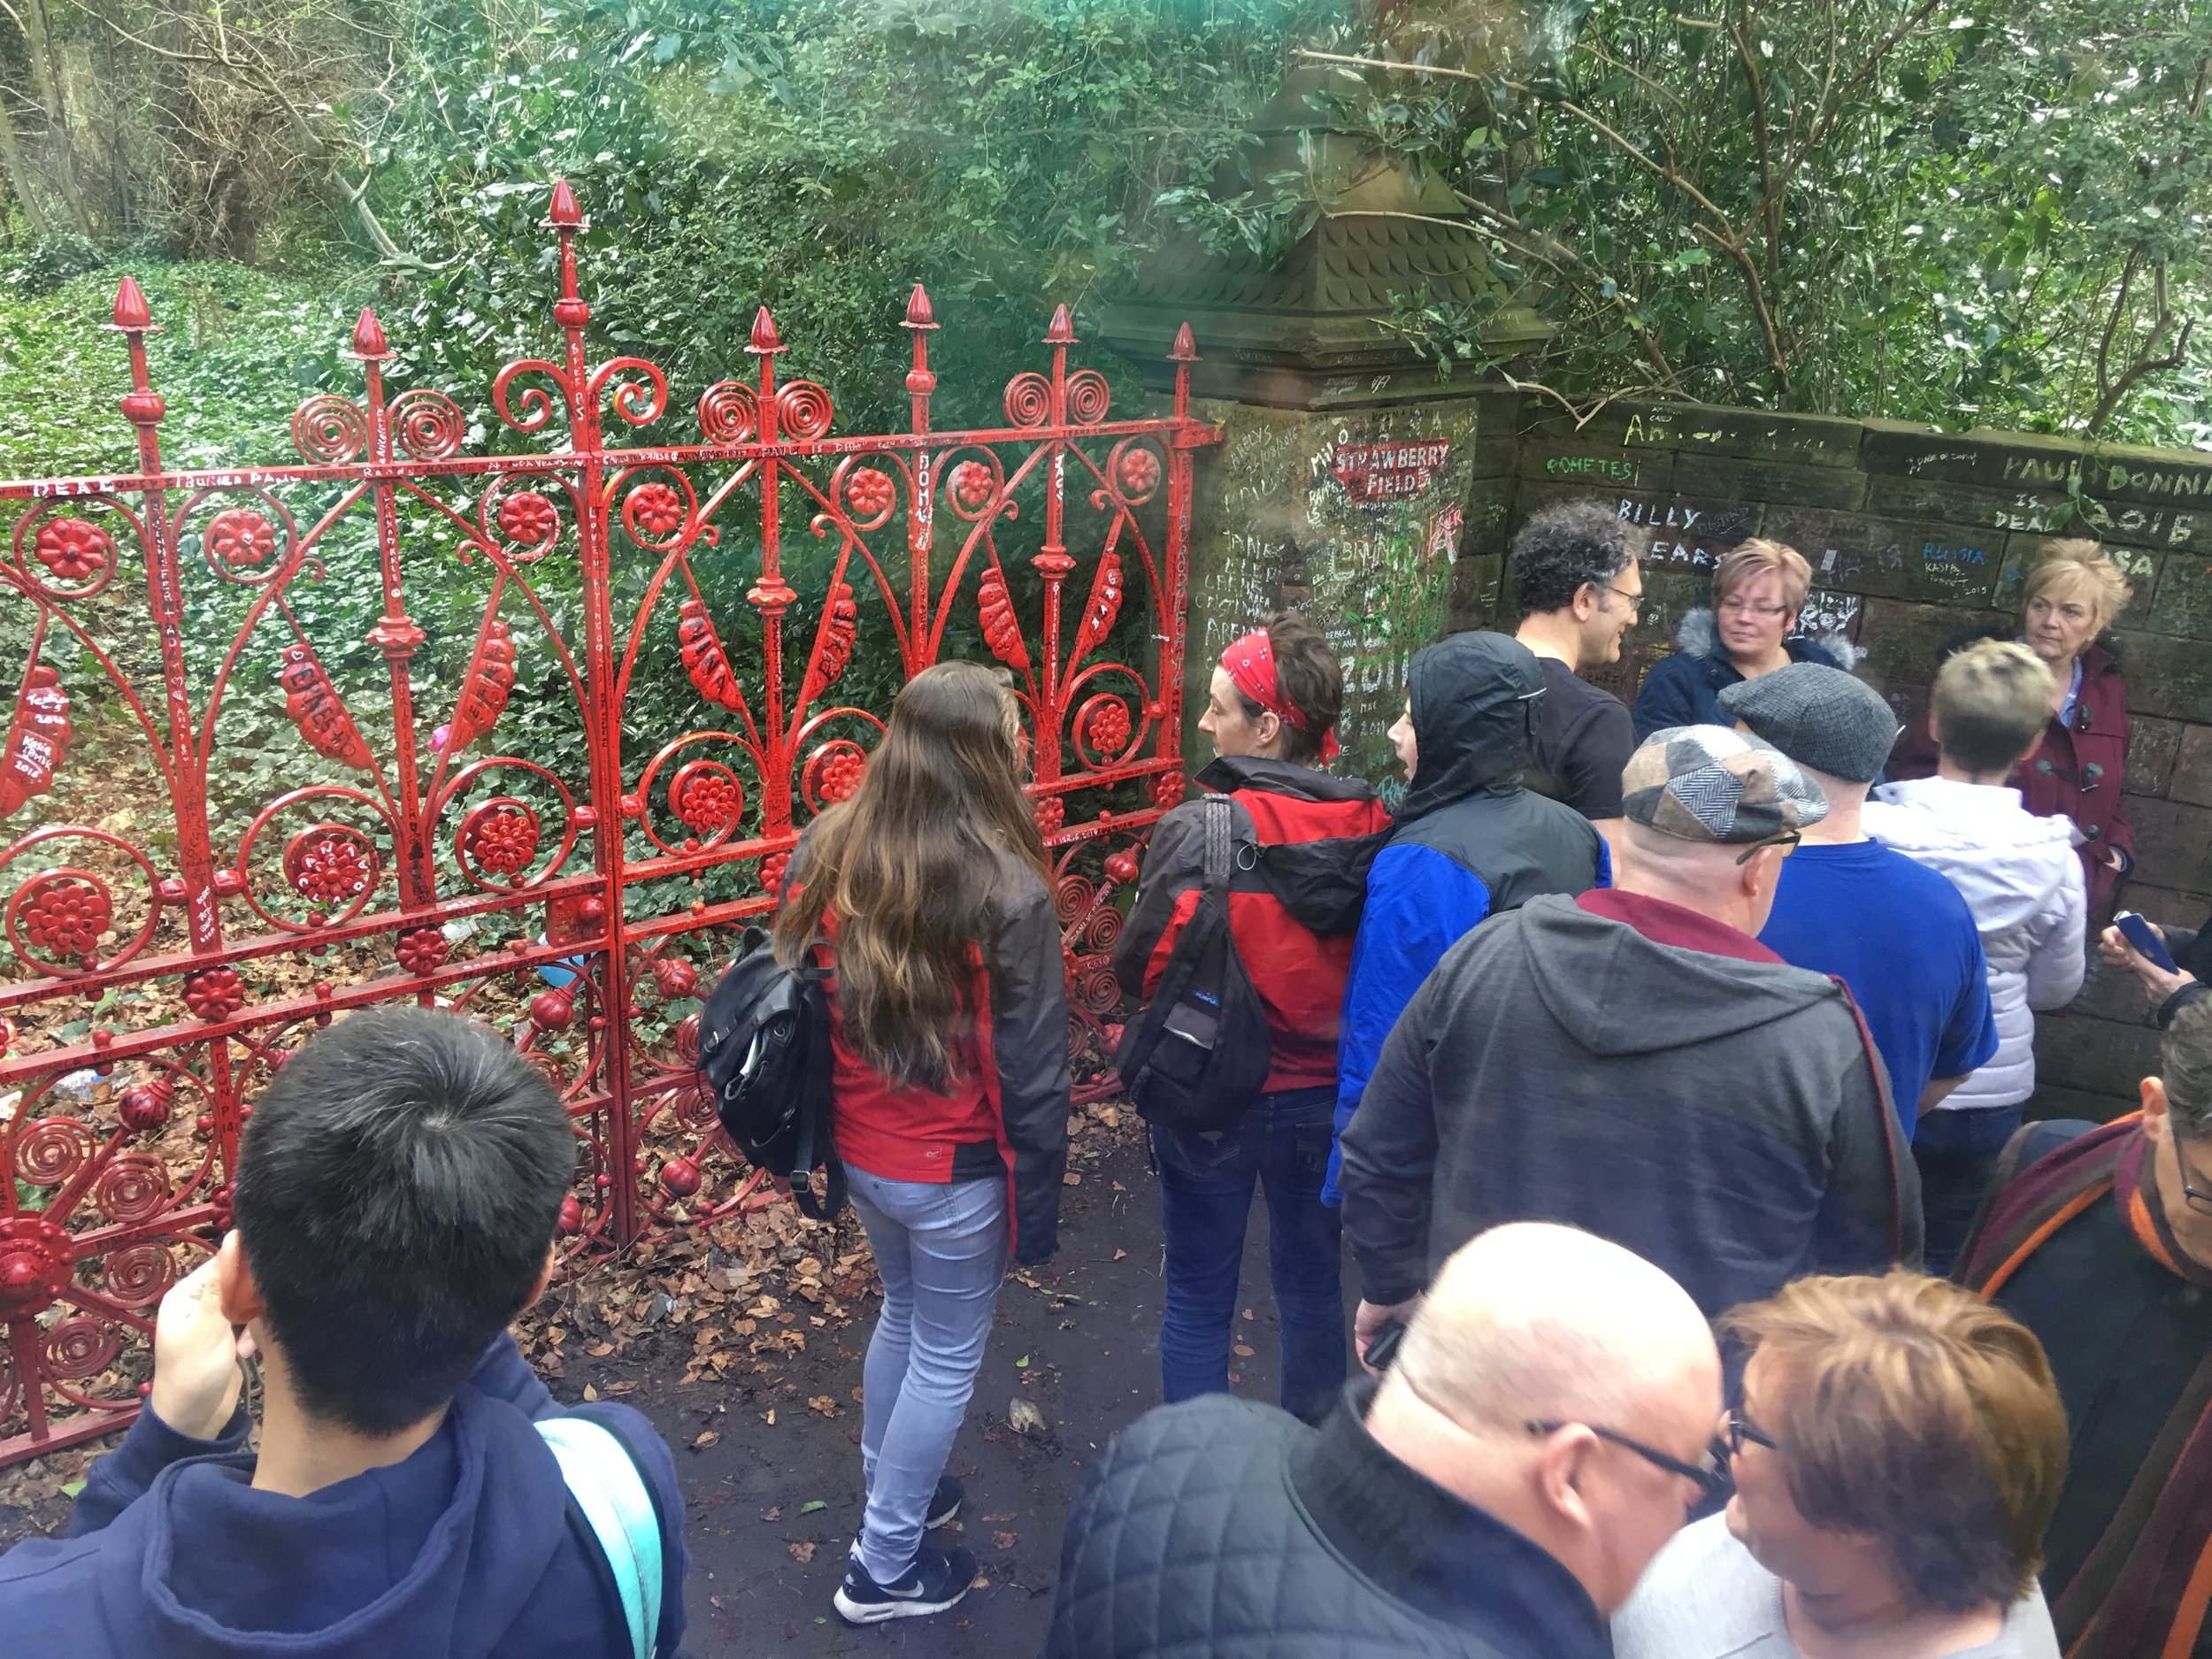 The gate at Strawberry Fields which inspired many a John Lennon lyric.